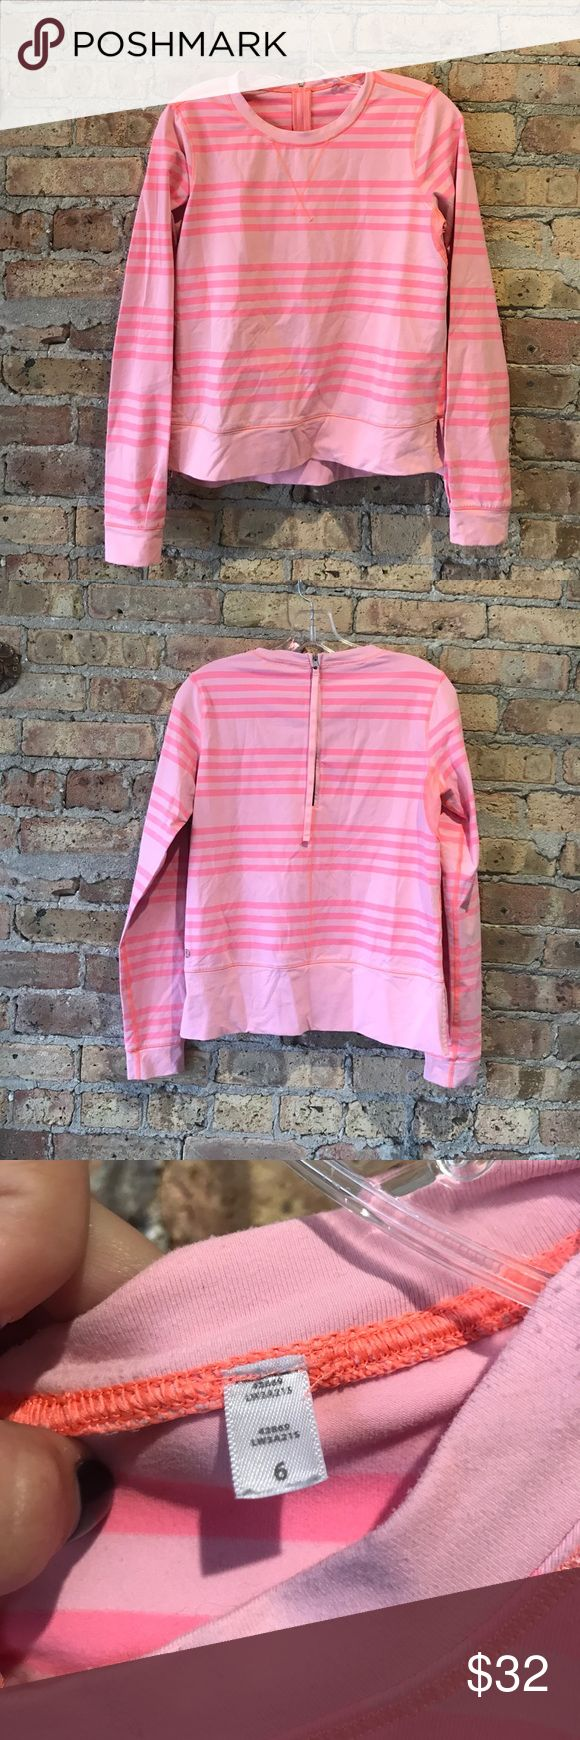 Lululemon pink long sleeve top size 6 Lululemon pink striped long sleeve top size 6. Zipper on back. Preloved great condition. lululemon athletica Tops Tees - Long Sleeve